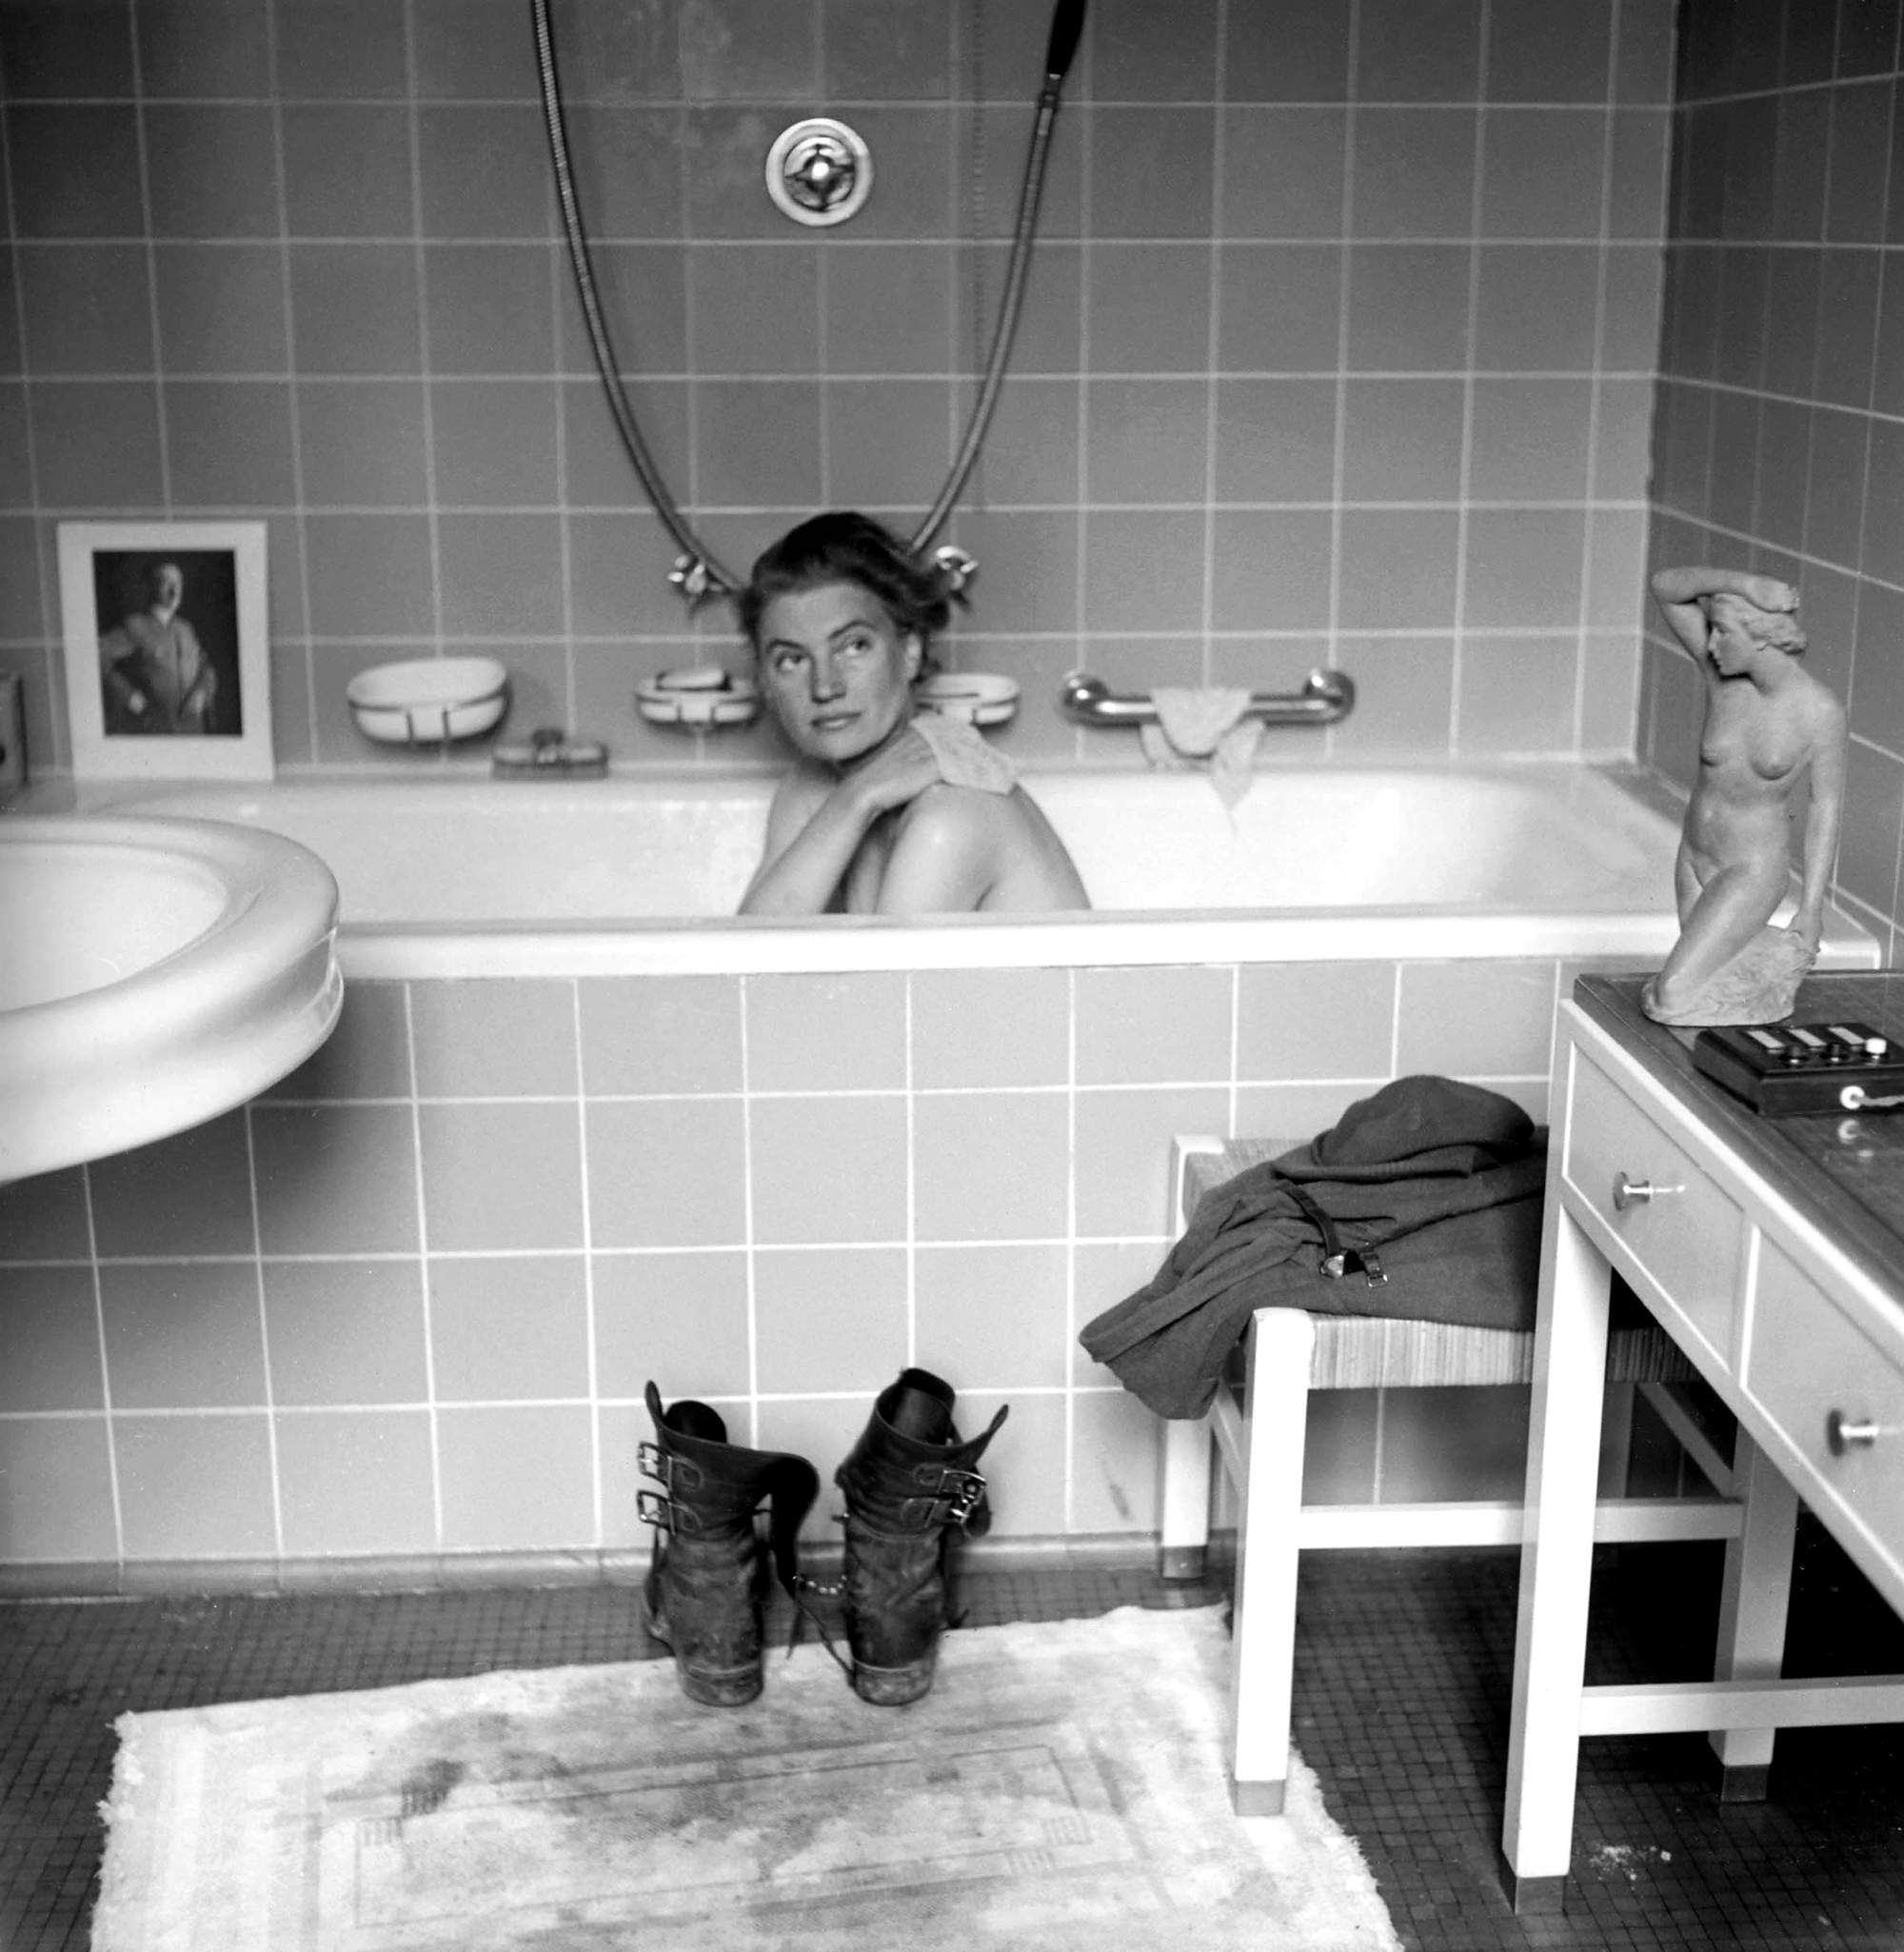 Lee Miller: The Woman in Hitler's Bathtub, Munich, 1945 Lee Miller's life was as extraordinary as her photos. A Twenties fashion model who became a Surrealist and later the only female combat photographer in Europe during the war, she documented the liberation of Dachau and Buchenwald concentration camps. She later married the Surrealist artist Roland Penrose, but became an alcoholic, depressive and sometimes spitefully cruel mother